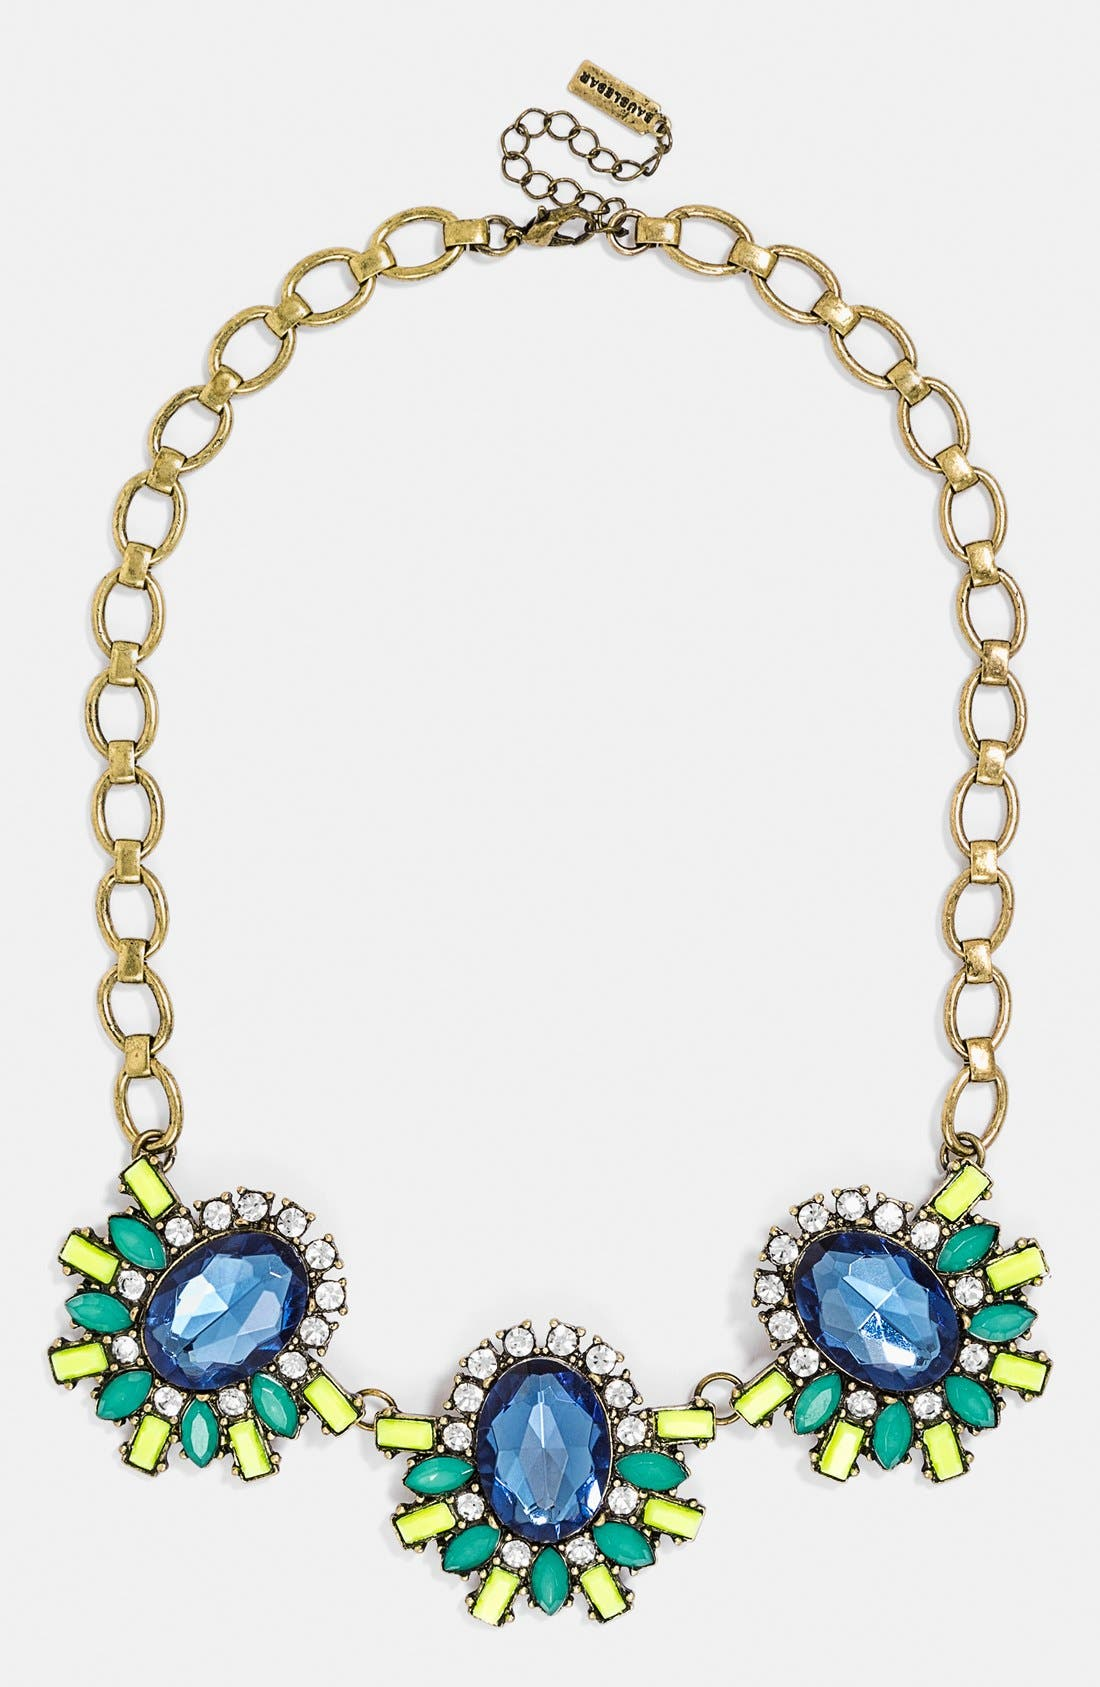 Main Image - BaubleBar 'Jupiter Gem' Collar Necklace